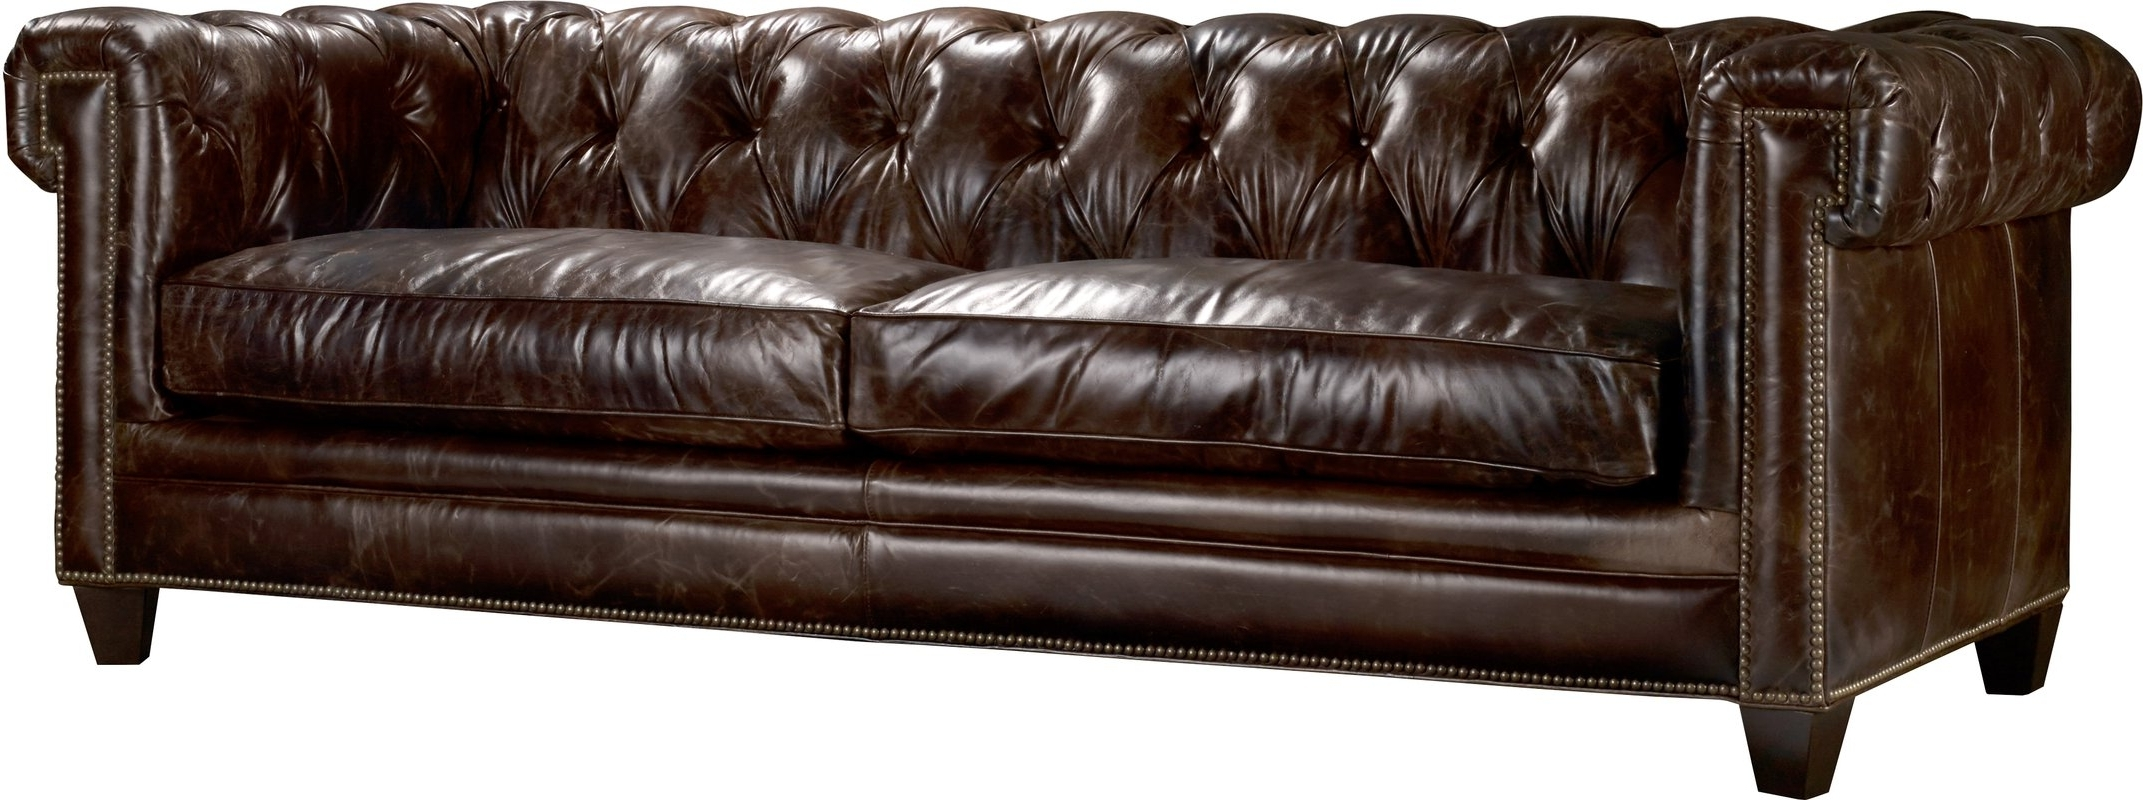 Recent Chesterfield Sofas Pertaining To Hooker Furniture Imperial Regal Stationary Leather Chesterfield (View 16 of 20)